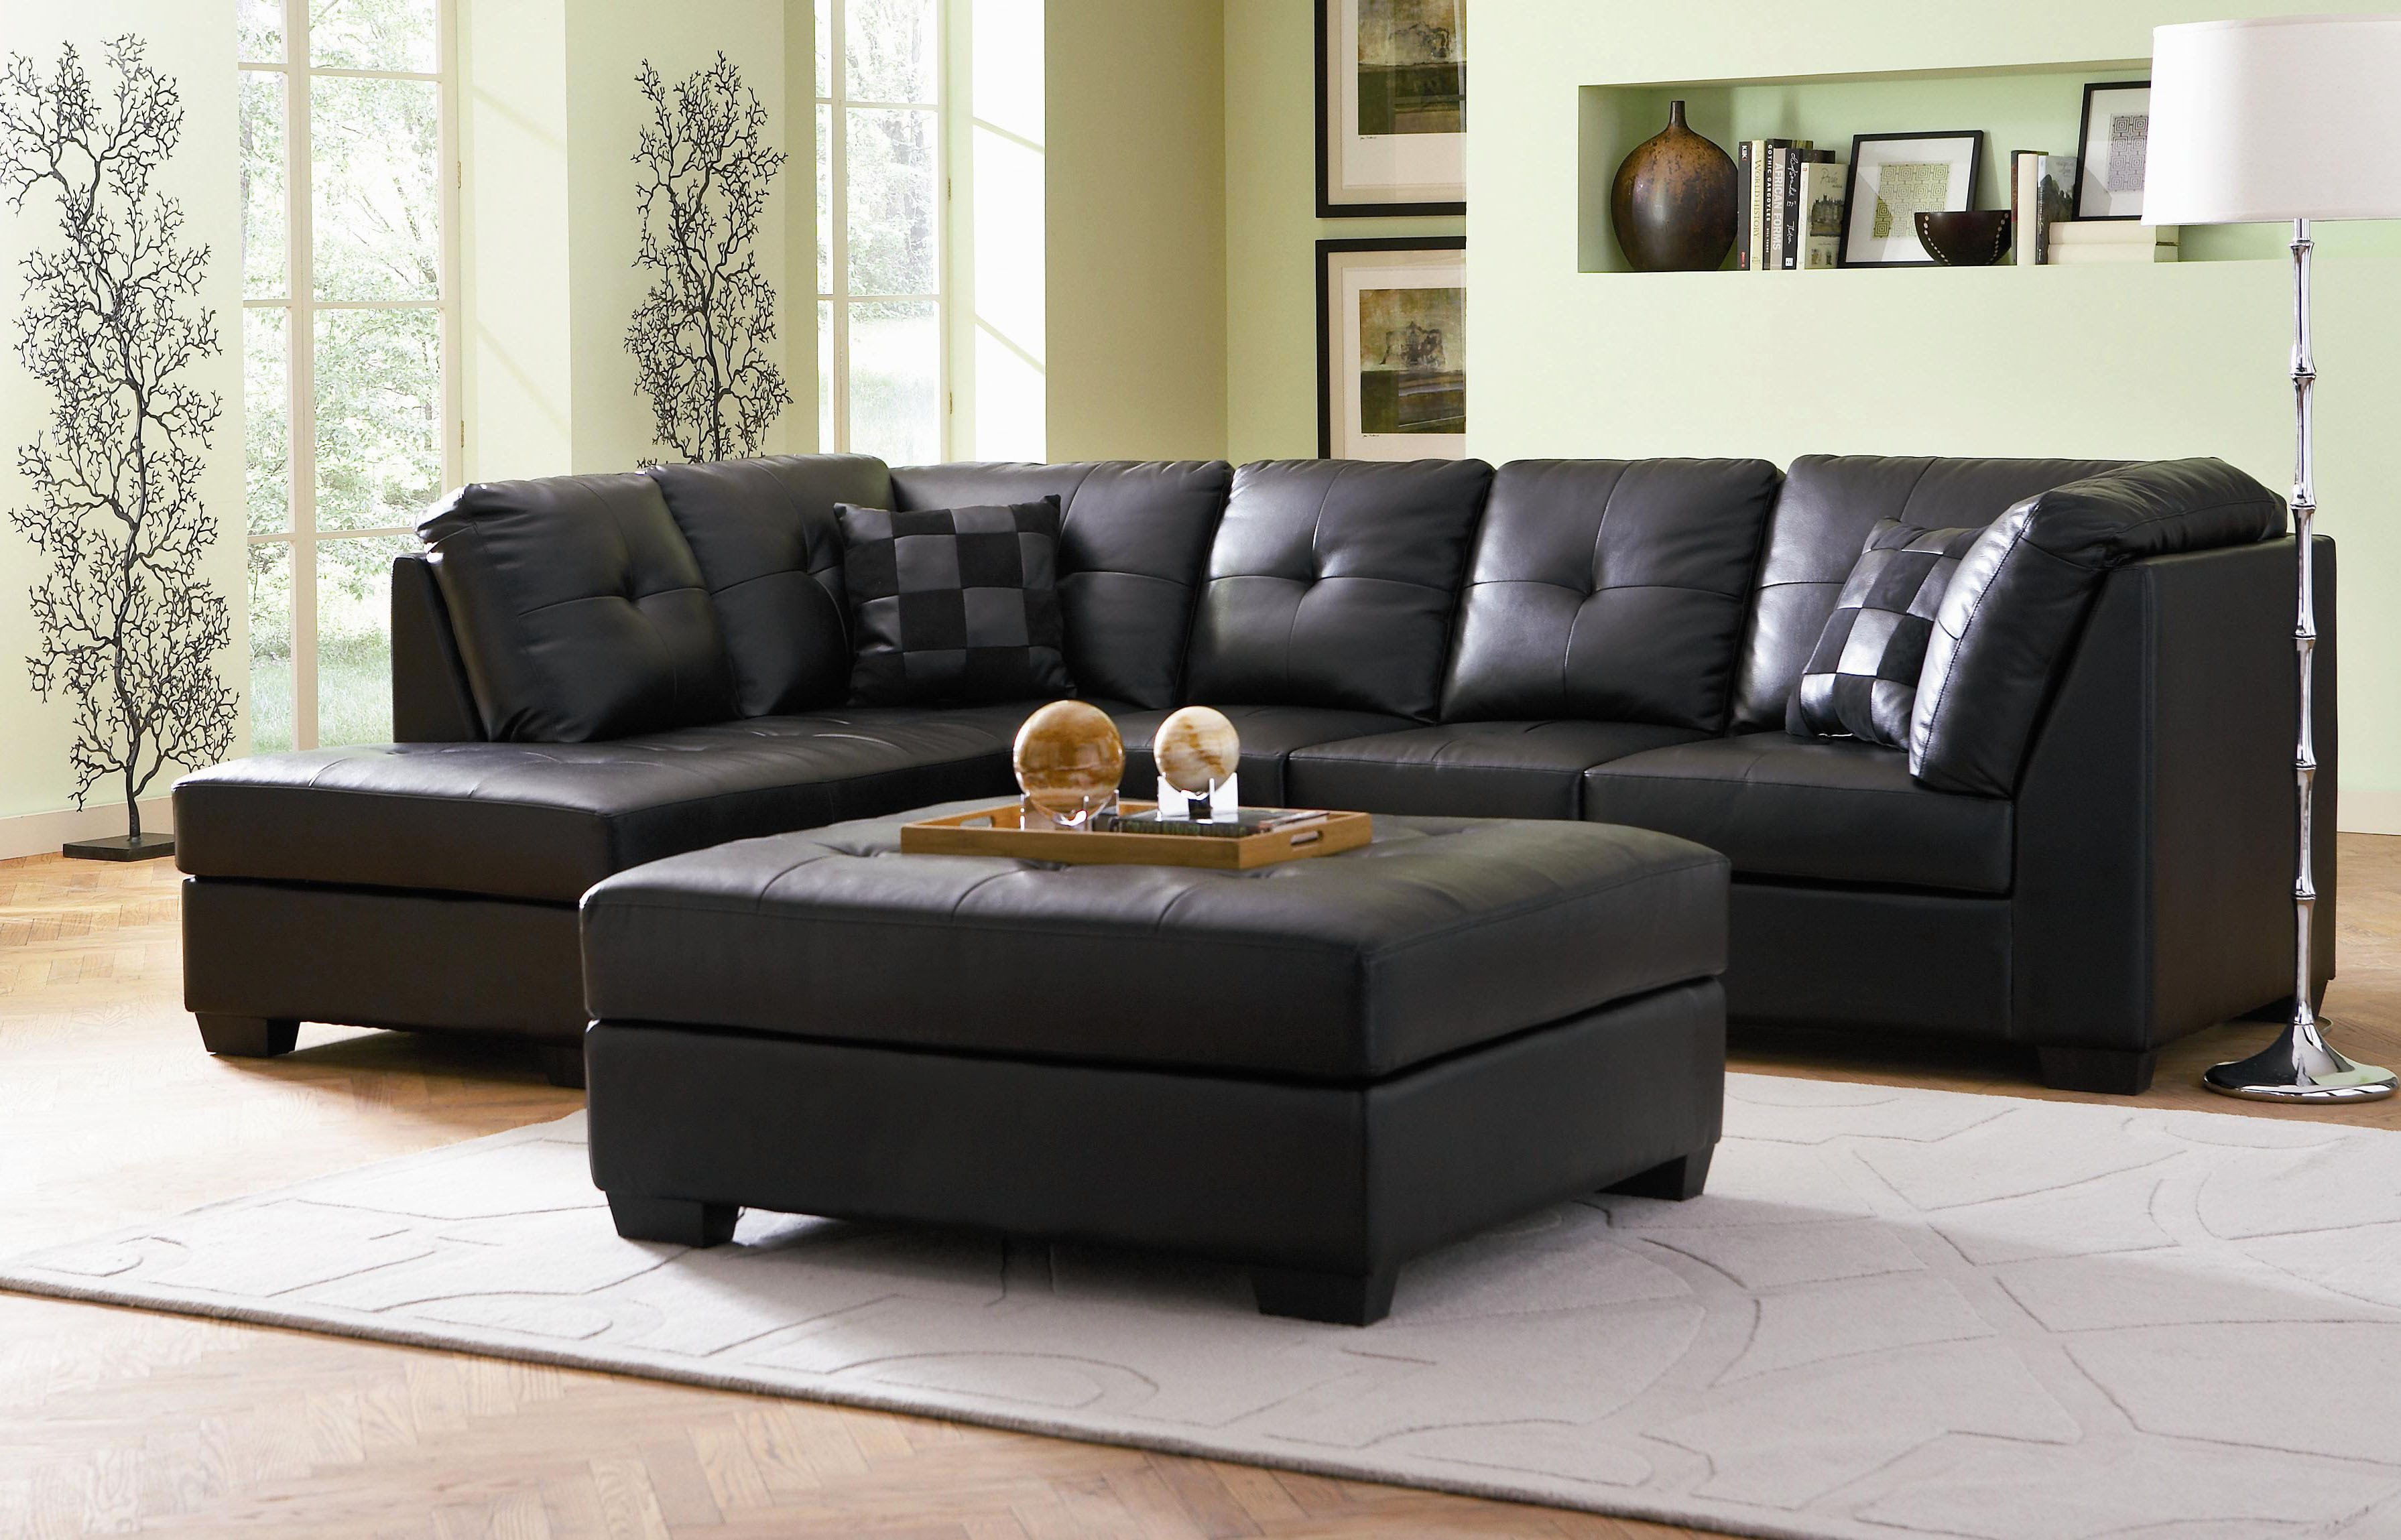 Lovely Inexpensive Sectional Sofas 59 On Modern Sofa Inspiration with Inexpensive Sectional Sofas